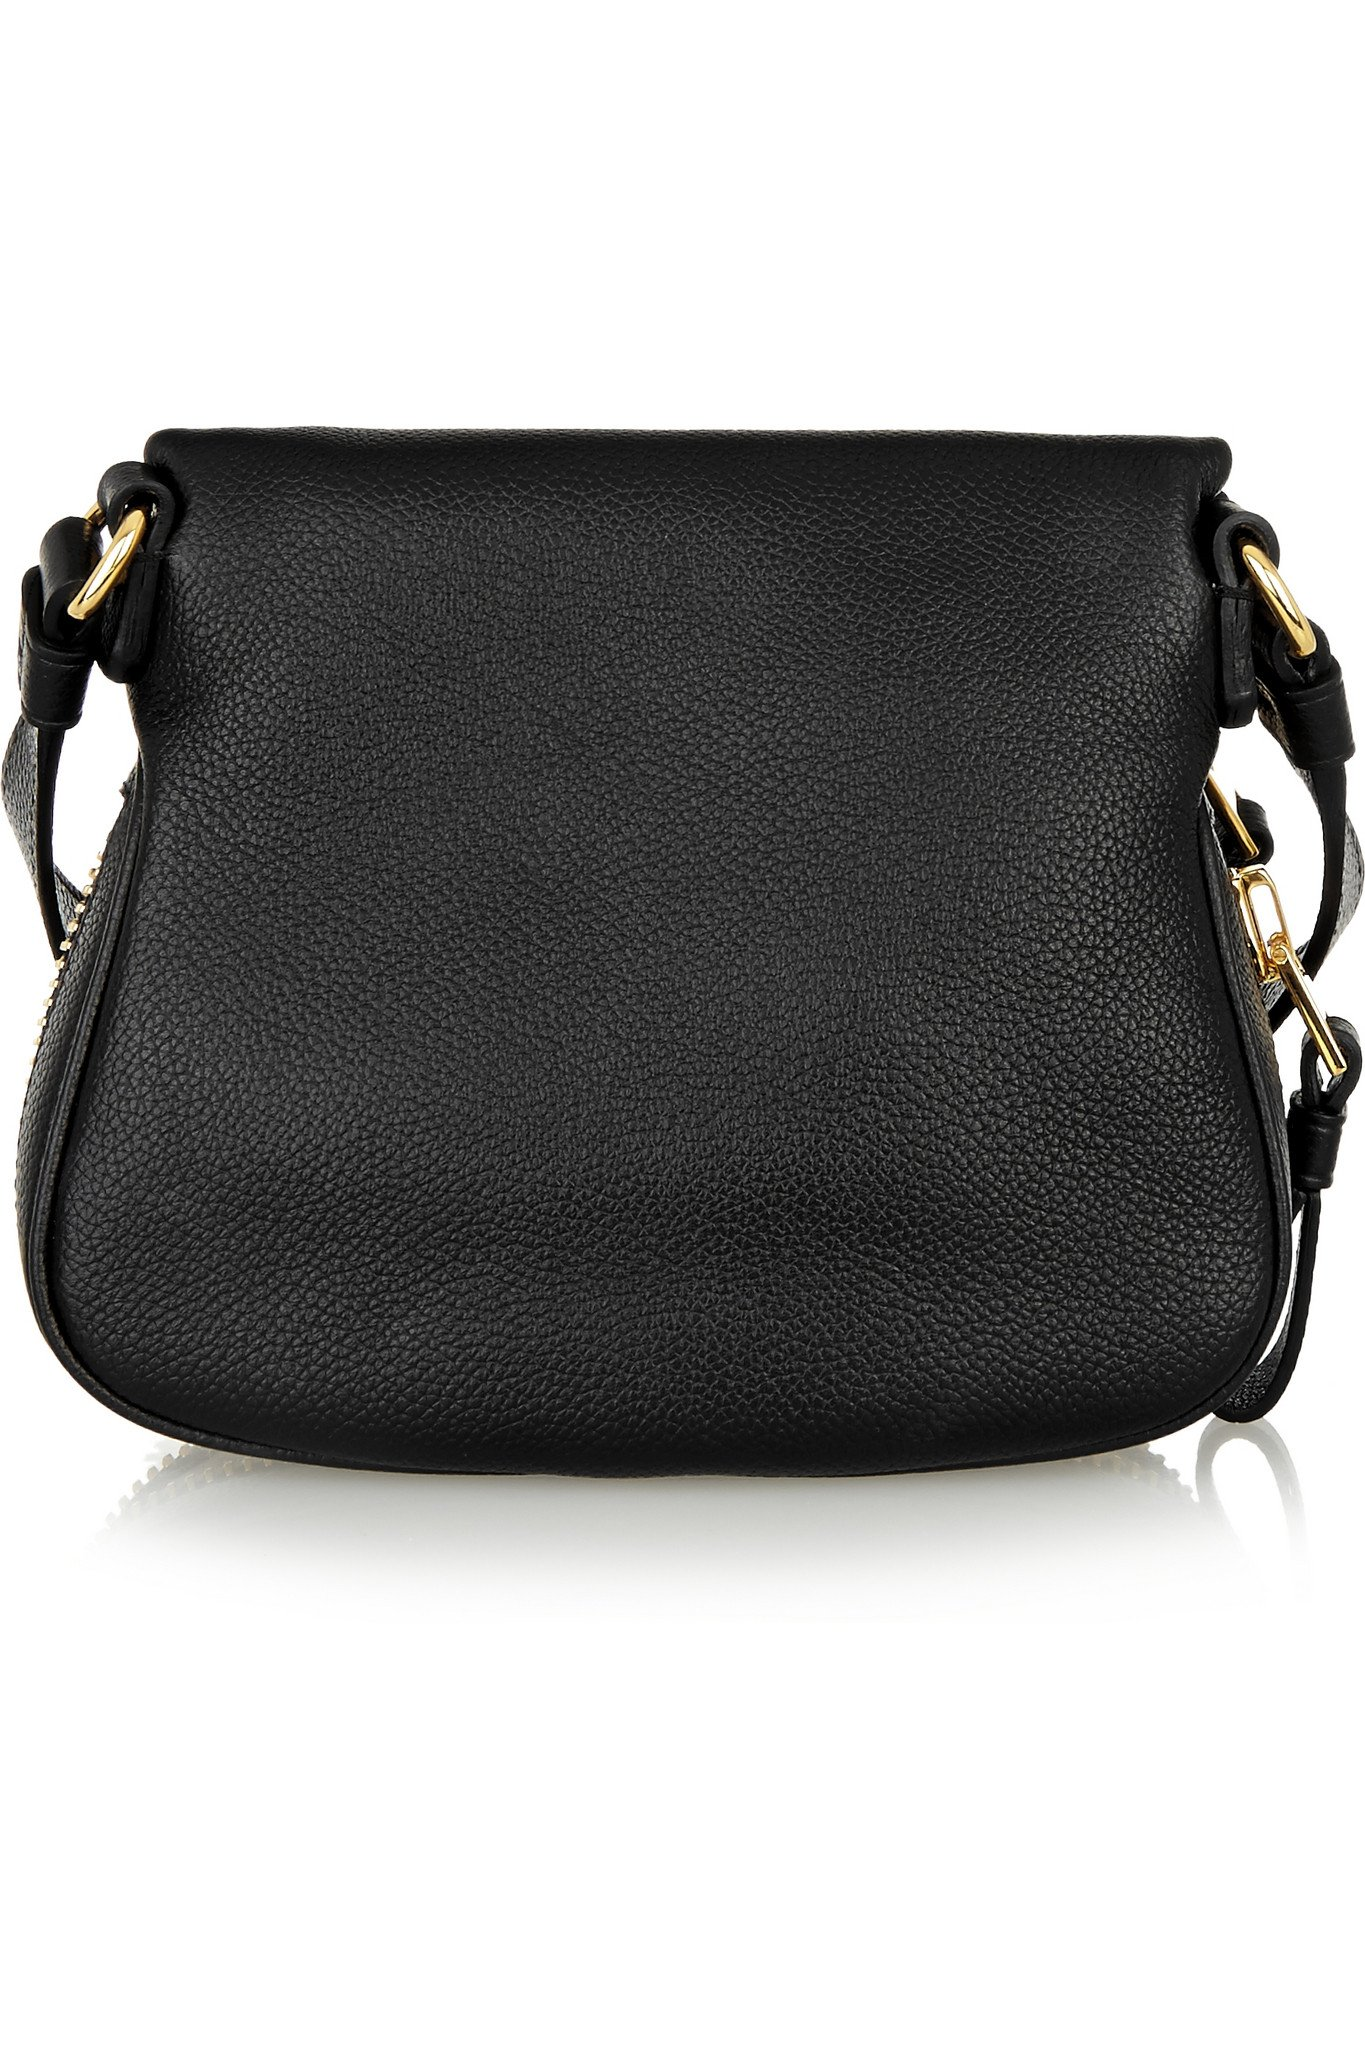 11c72cb68150 Tom Ford Jennifer Mini Textured-leather Shoulder Bag in Black - Lyst